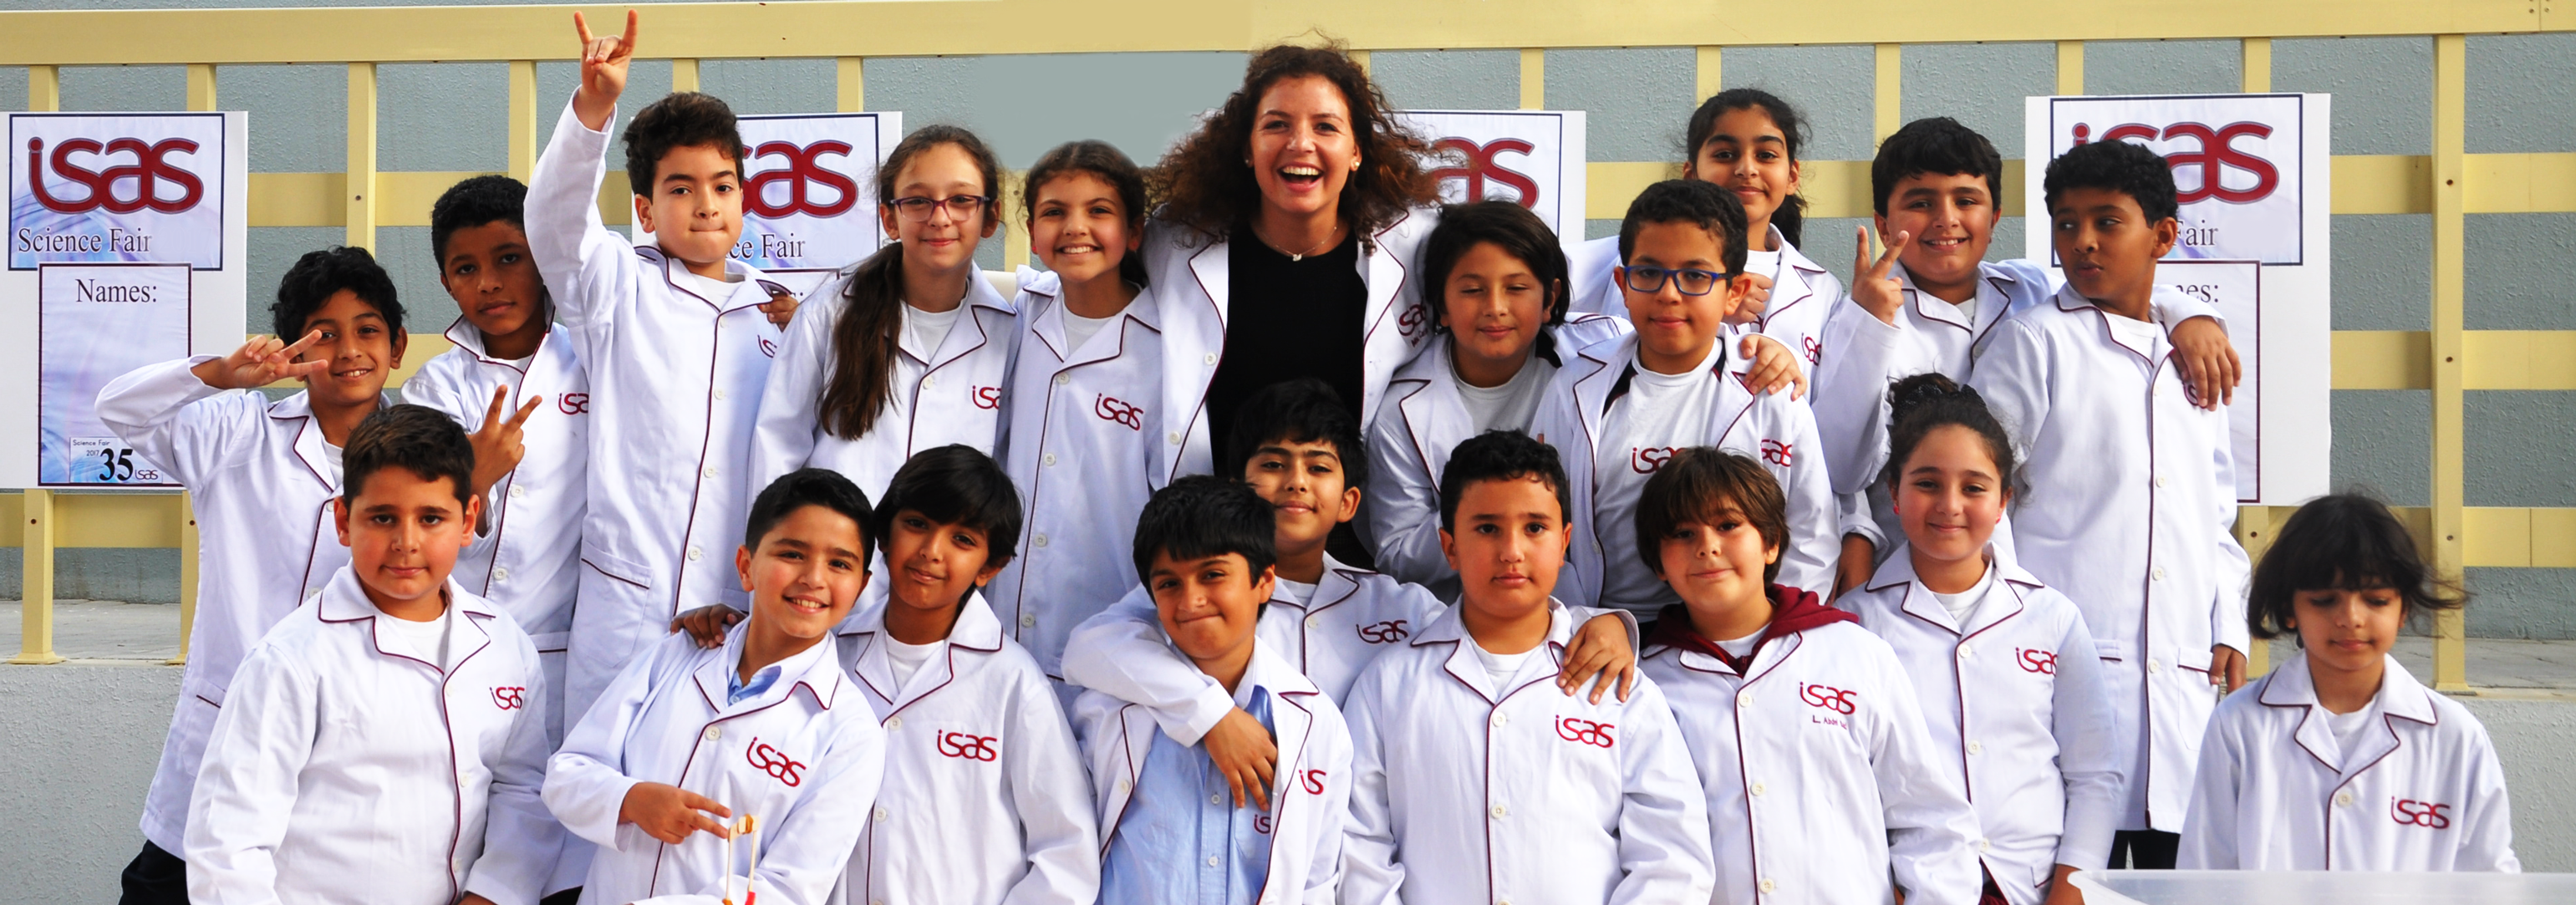 International School of Arts and Sciences, Managed by AMSI.